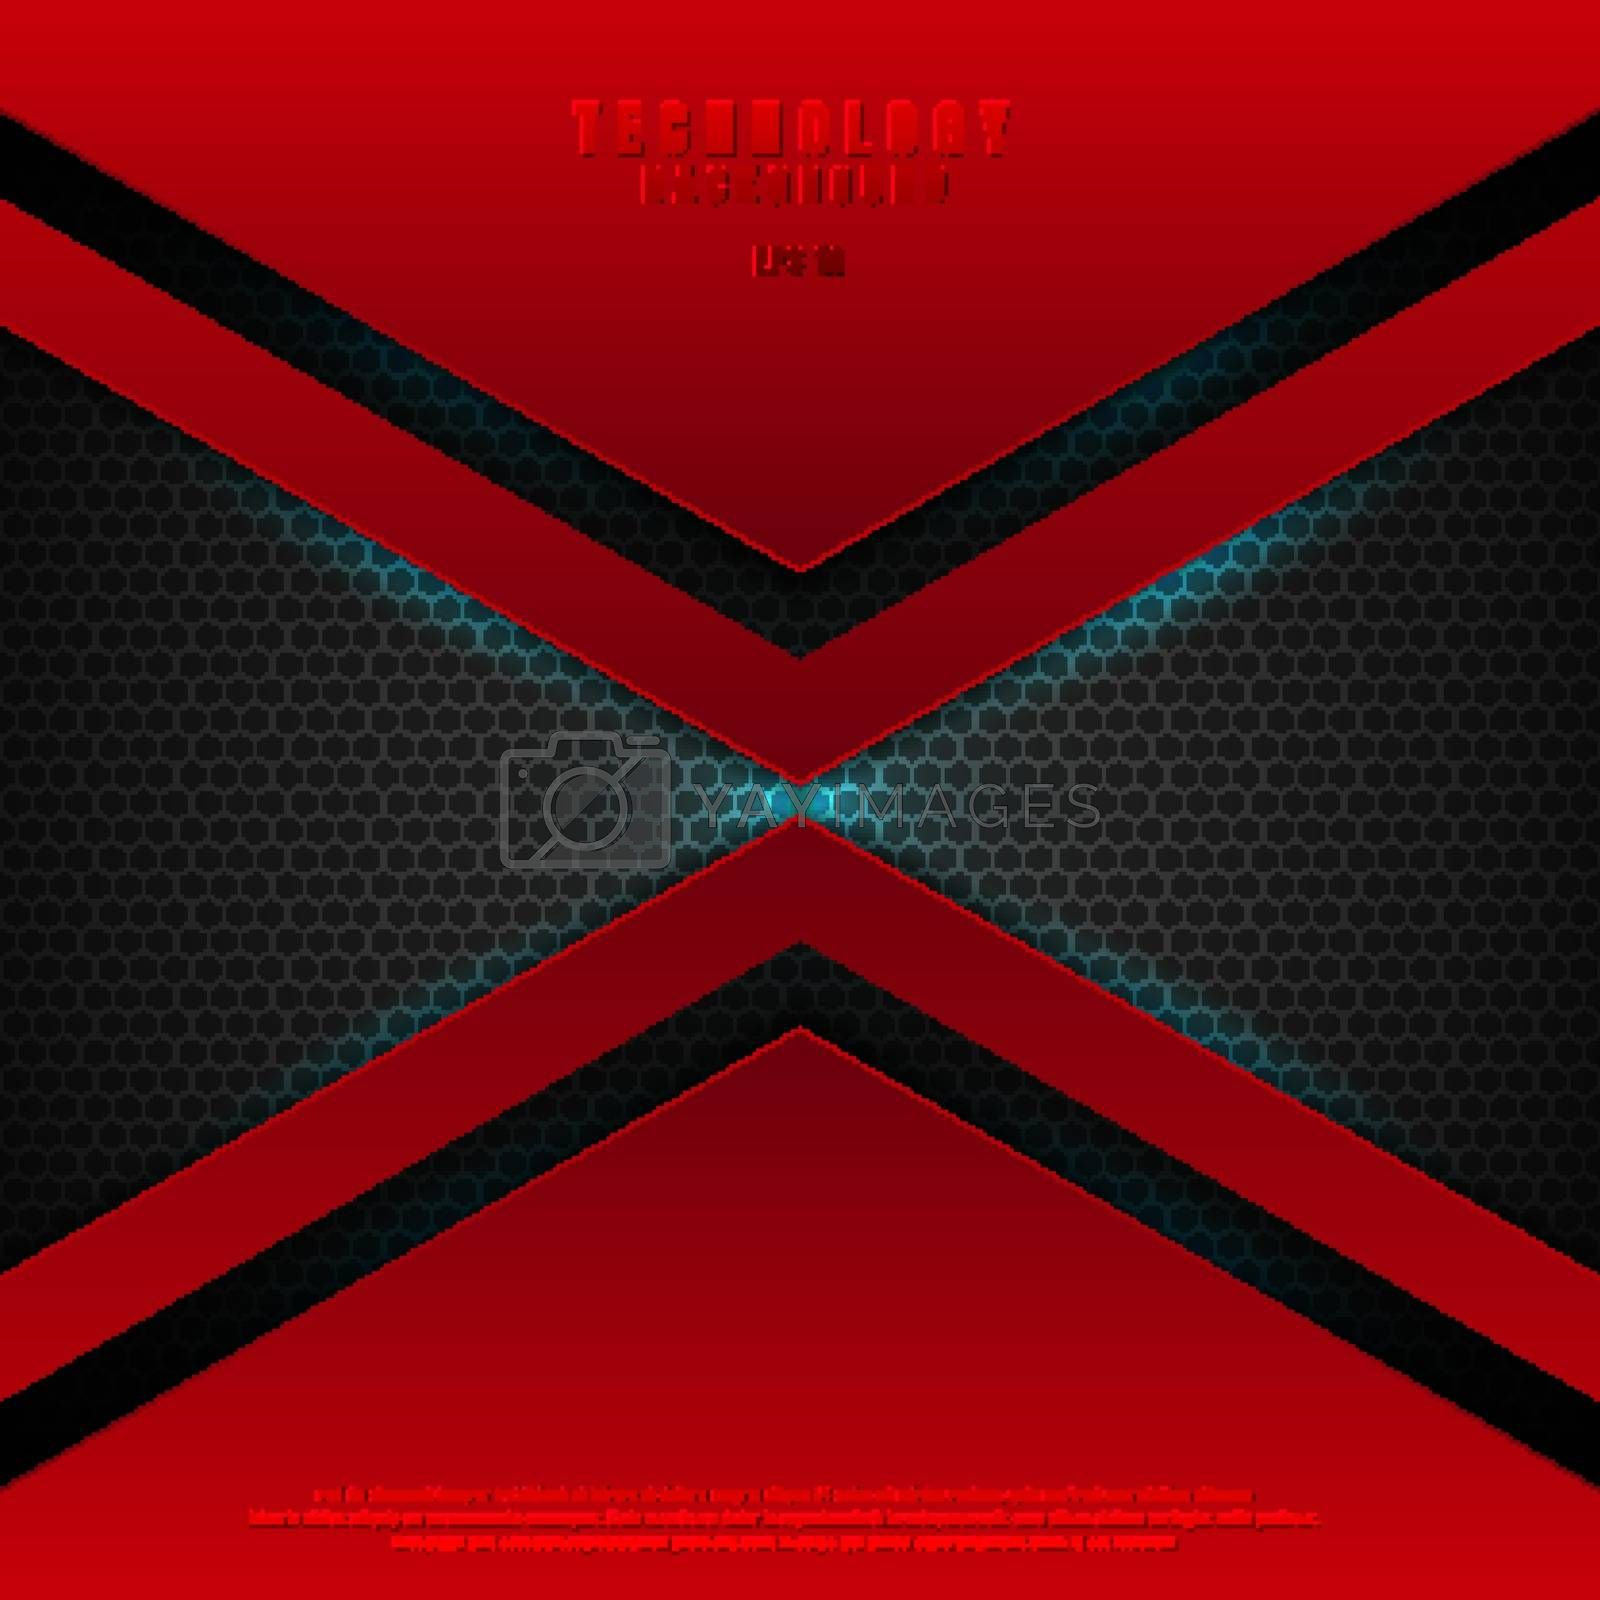 Abstract technology futuristic red geometric triangle on black background with blue lighting effect. Vector illustration